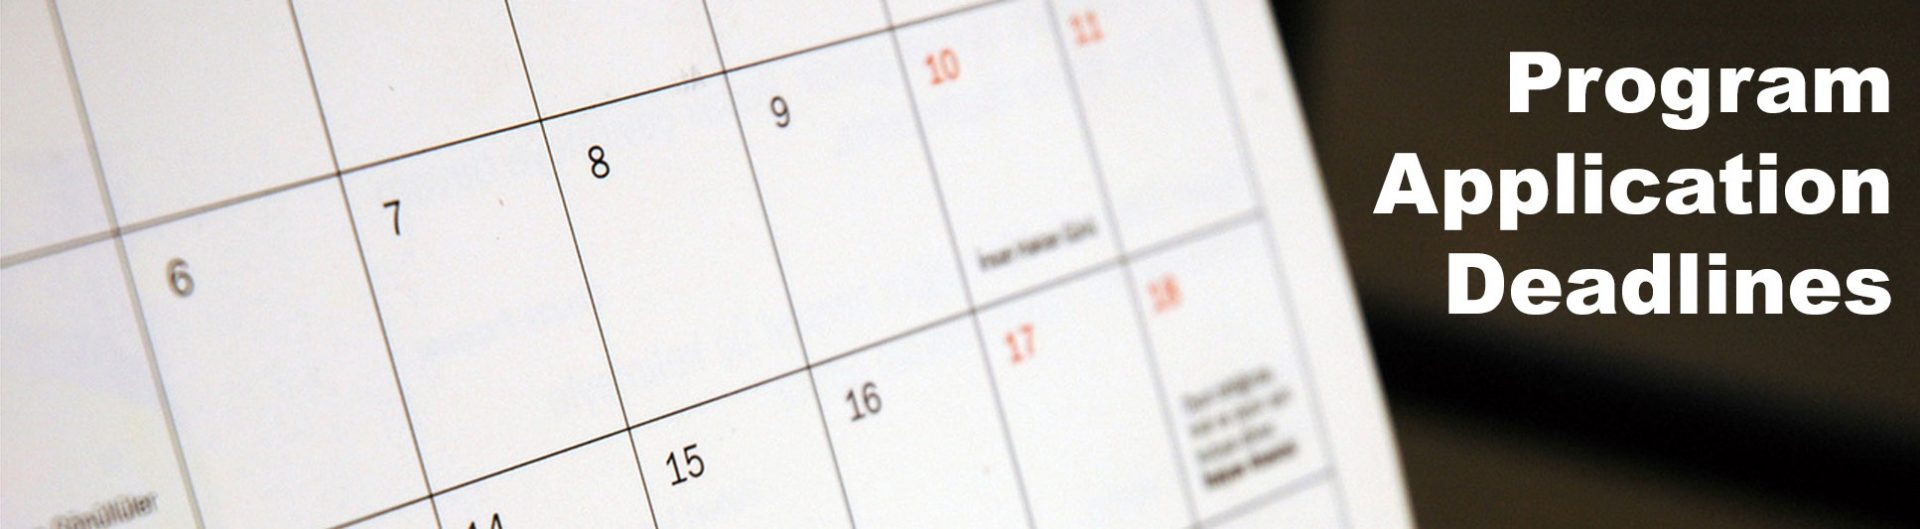 calendar showcasing program application deadlines